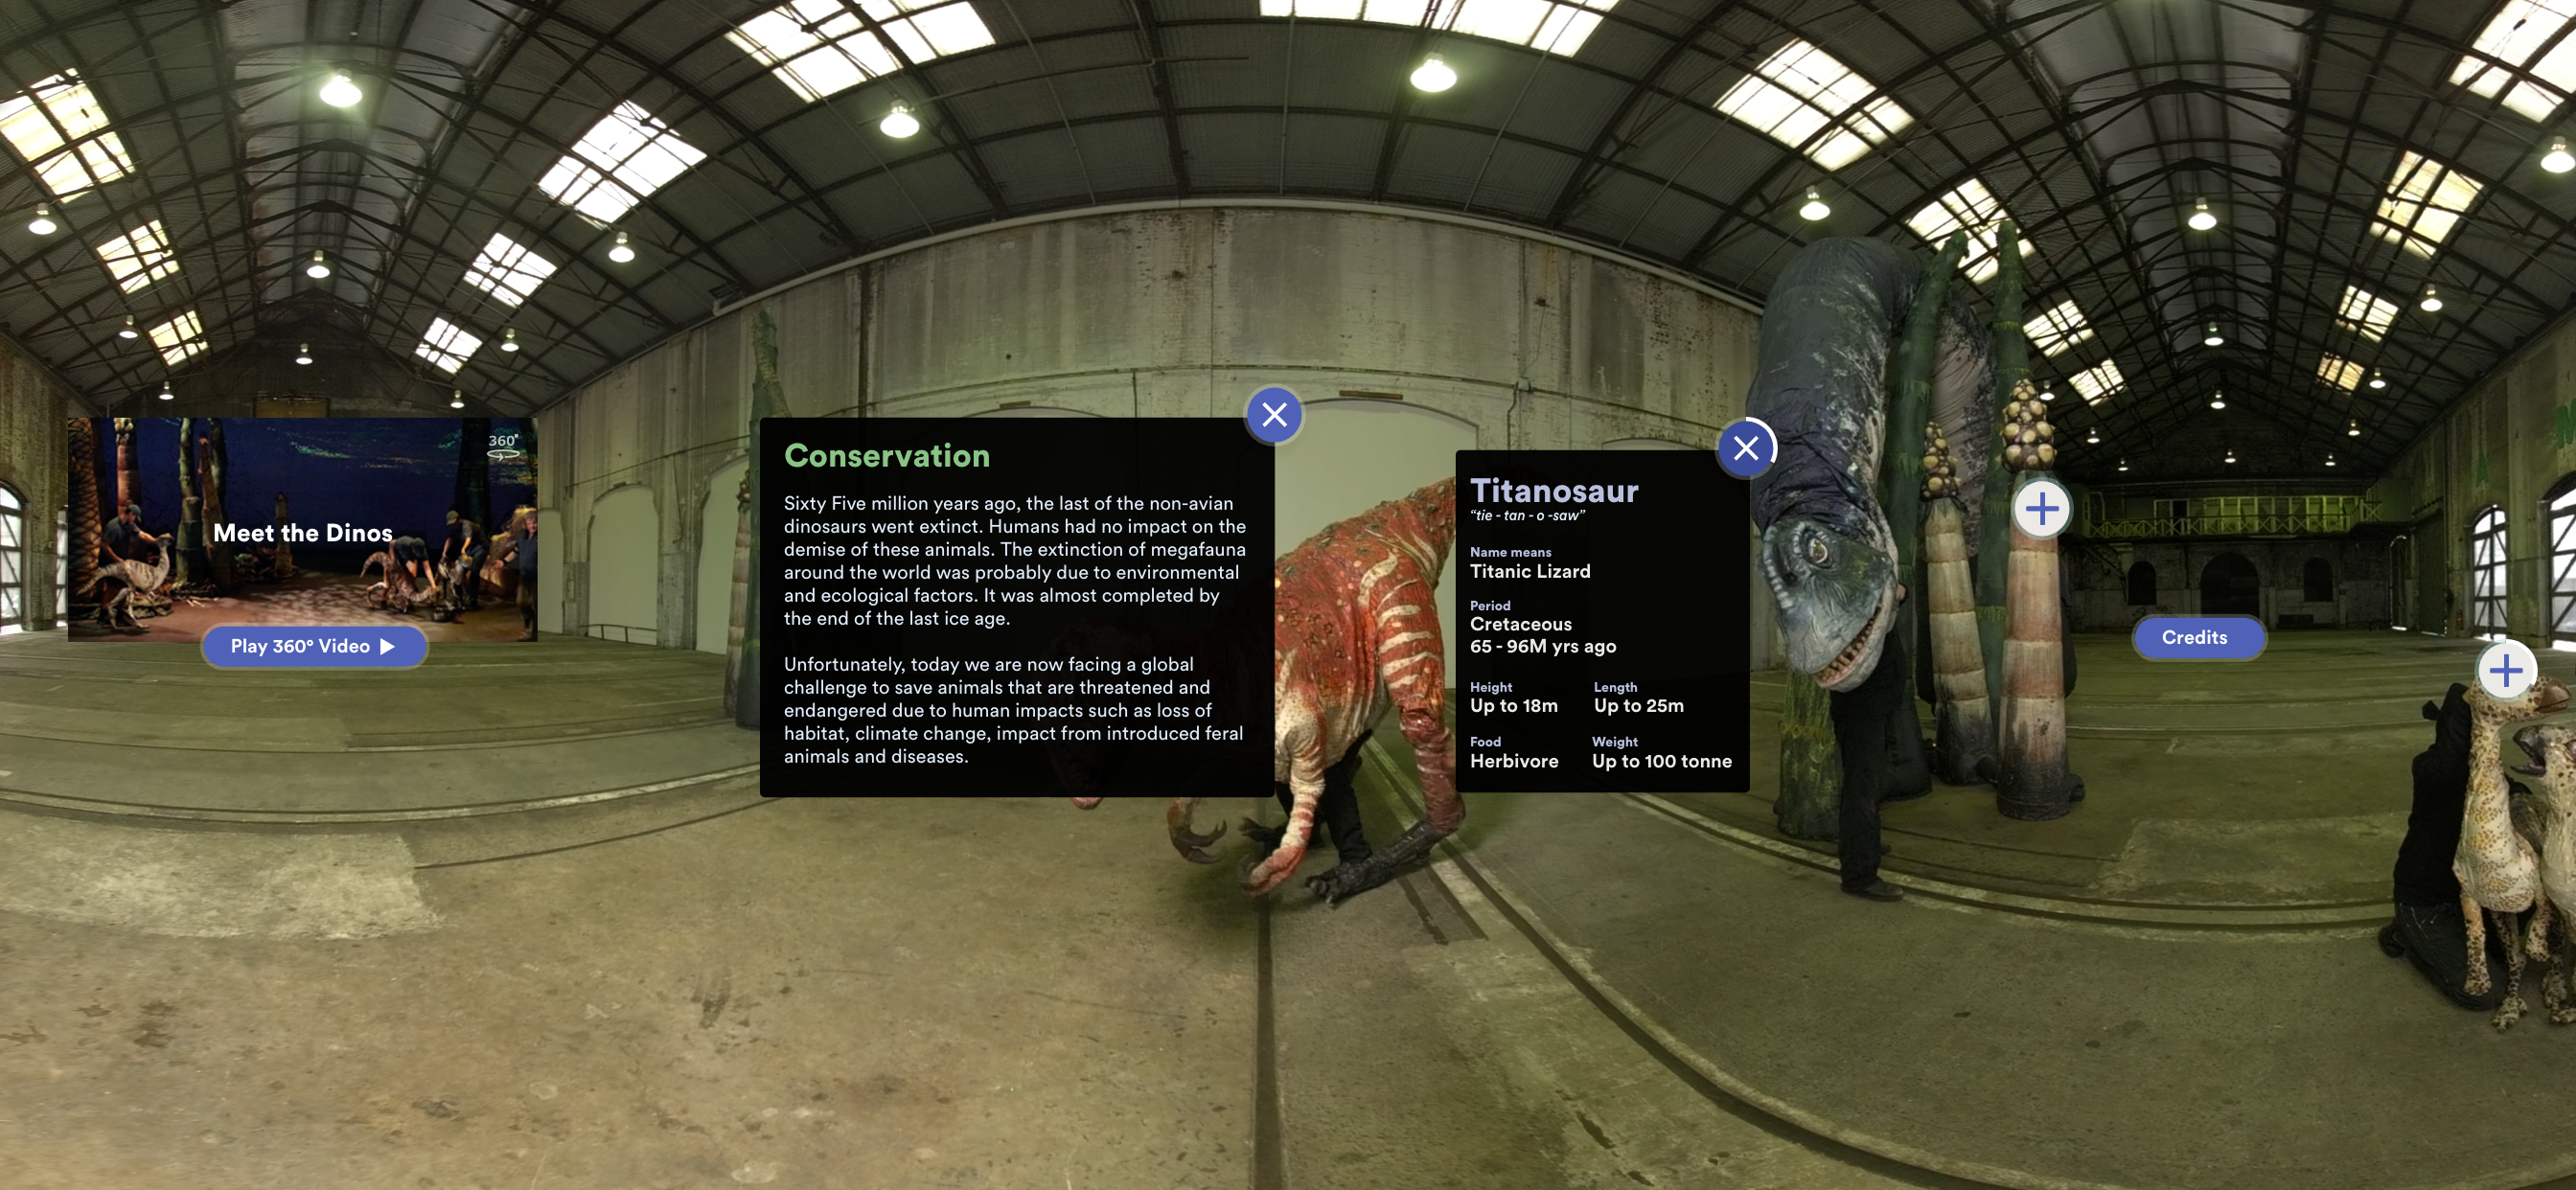 Digital Dinos menu by Sydney Opera House and Erth